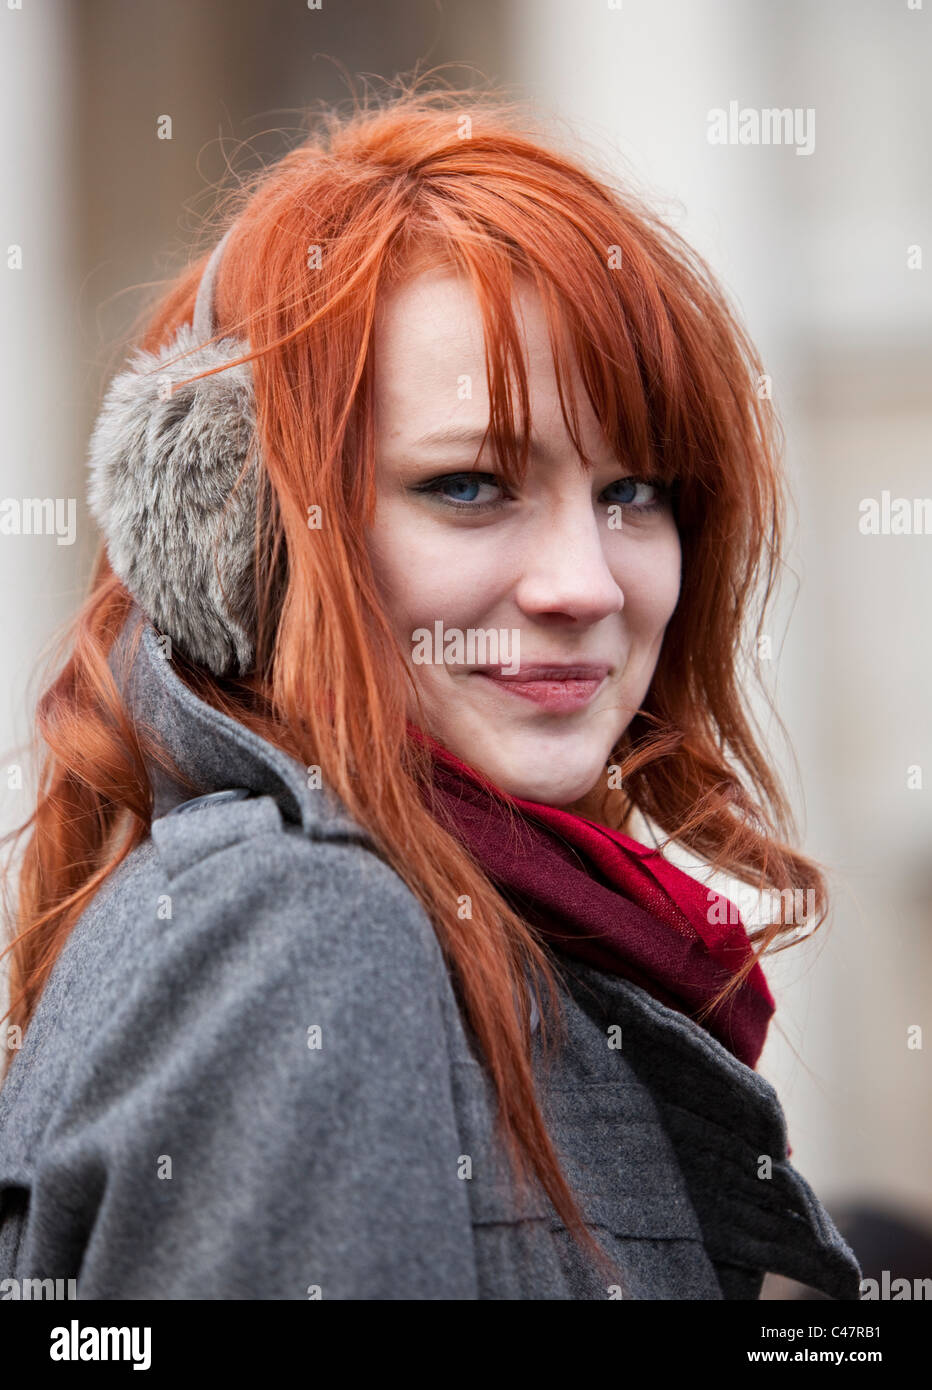 Headshot portrait of a ginger haired teenager wearing earmuffs in winter, London, England, UK, GB. Stock Photo